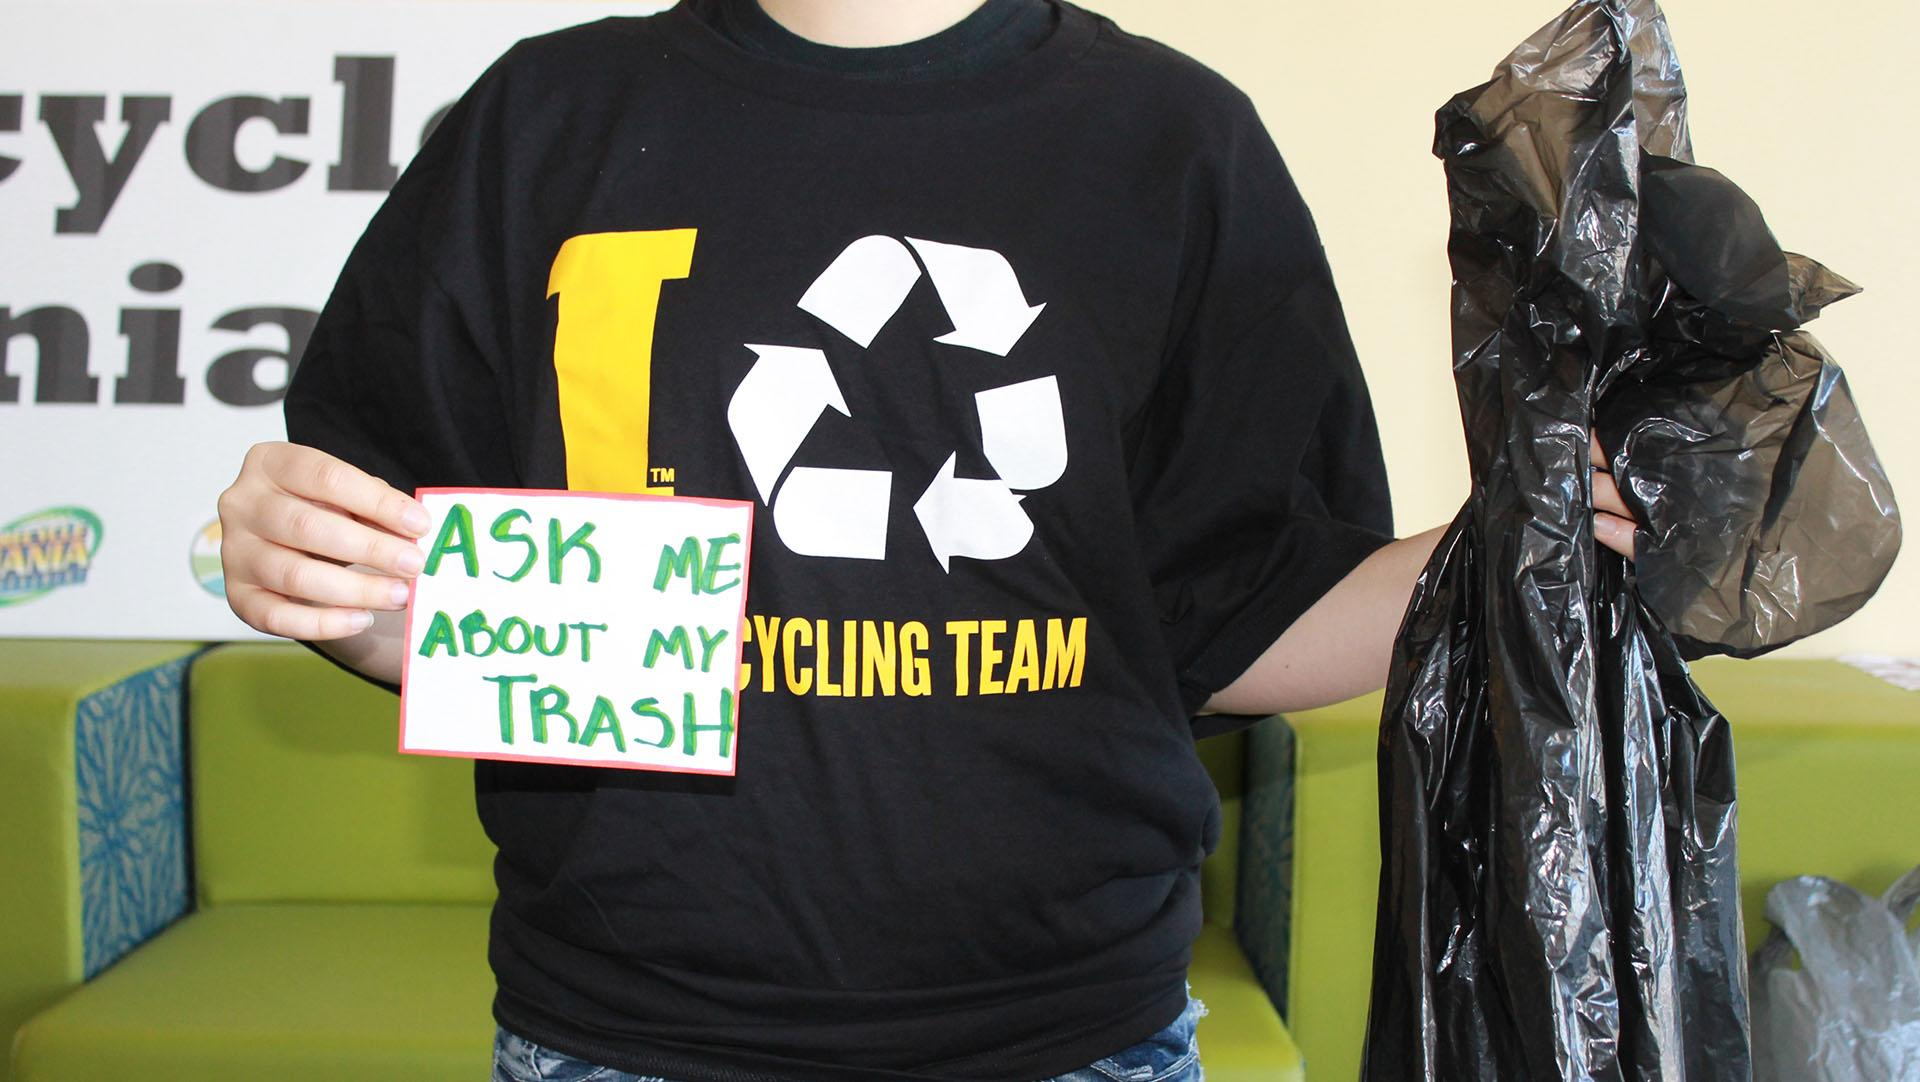 Recycle Mania Intern Elana Becker kicks off Earth Month in the Office of Sustainability on Monday, March 28, 2016. The Office of Sustainability just ended Recycle Mania, and is encouraging students to carry their trash bags over their backs around campus this week as a way to raise awareness of how much trash a single person can produce. (The Daily Iowan/McCall Radavich)